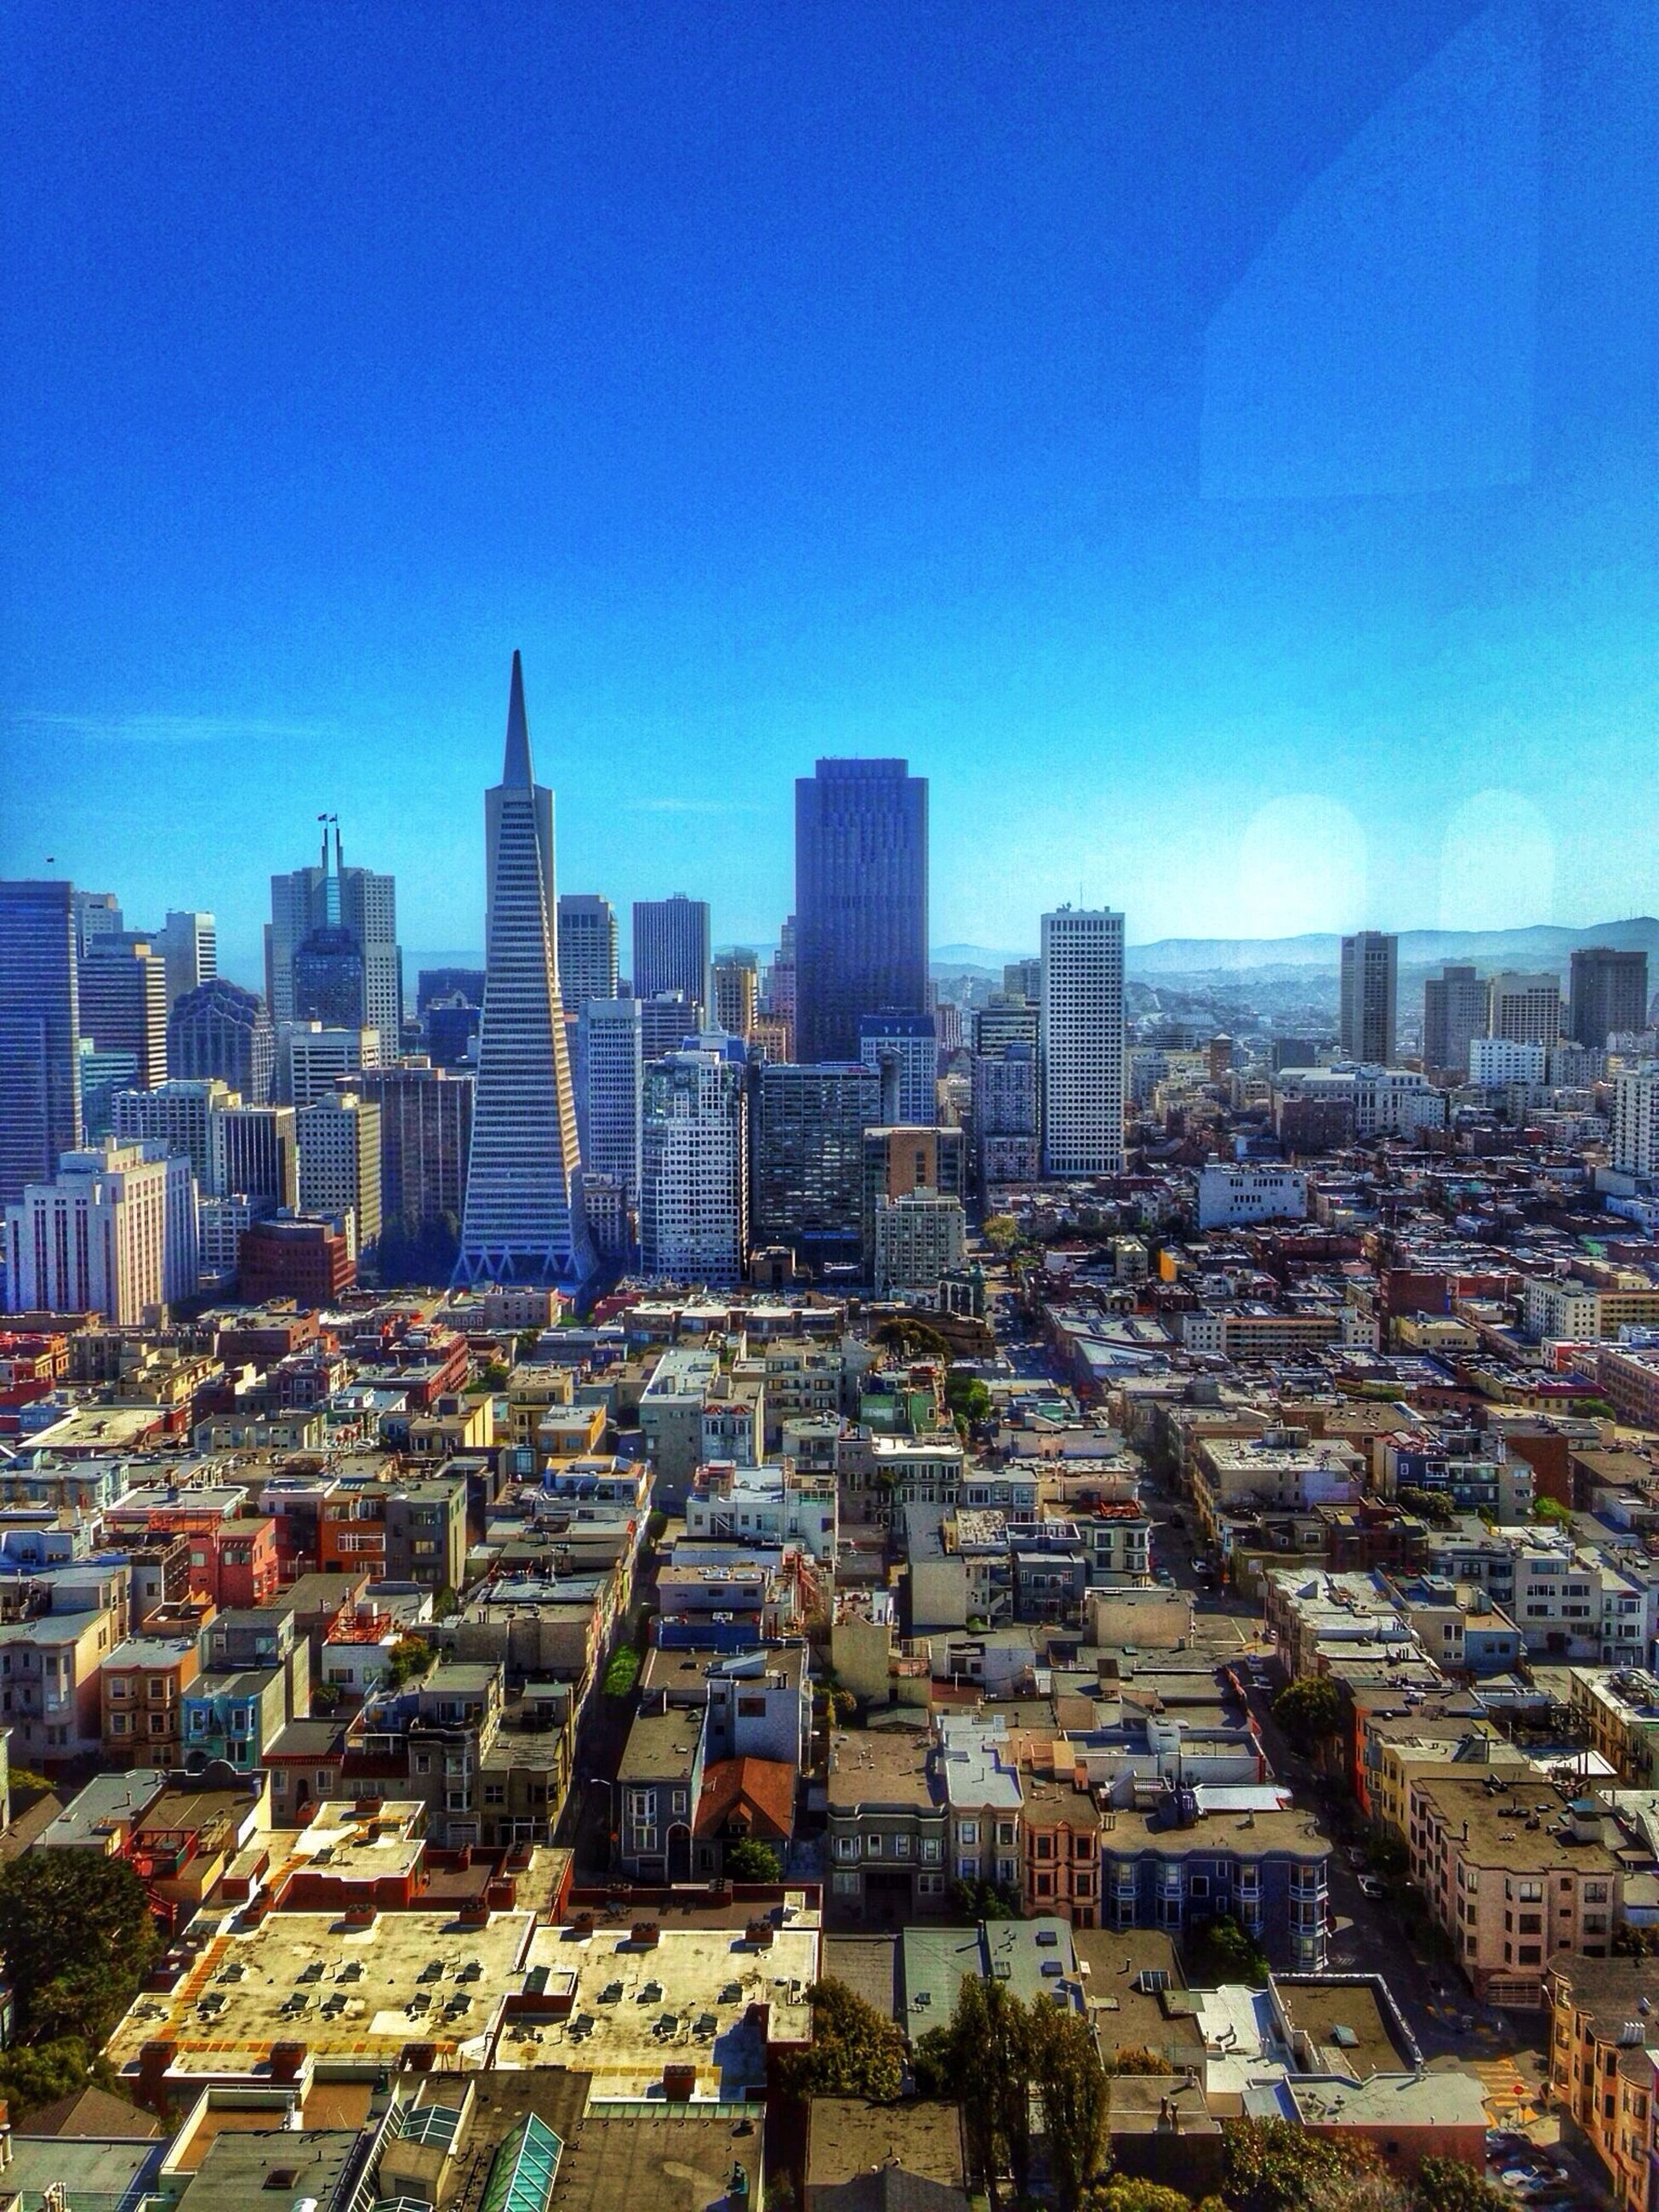 building exterior, city, cityscape, architecture, built structure, skyscraper, clear sky, blue, tower, crowded, tall - high, office building, urban skyline, copy space, modern, high angle view, capital cities, city life, financial district, residential district